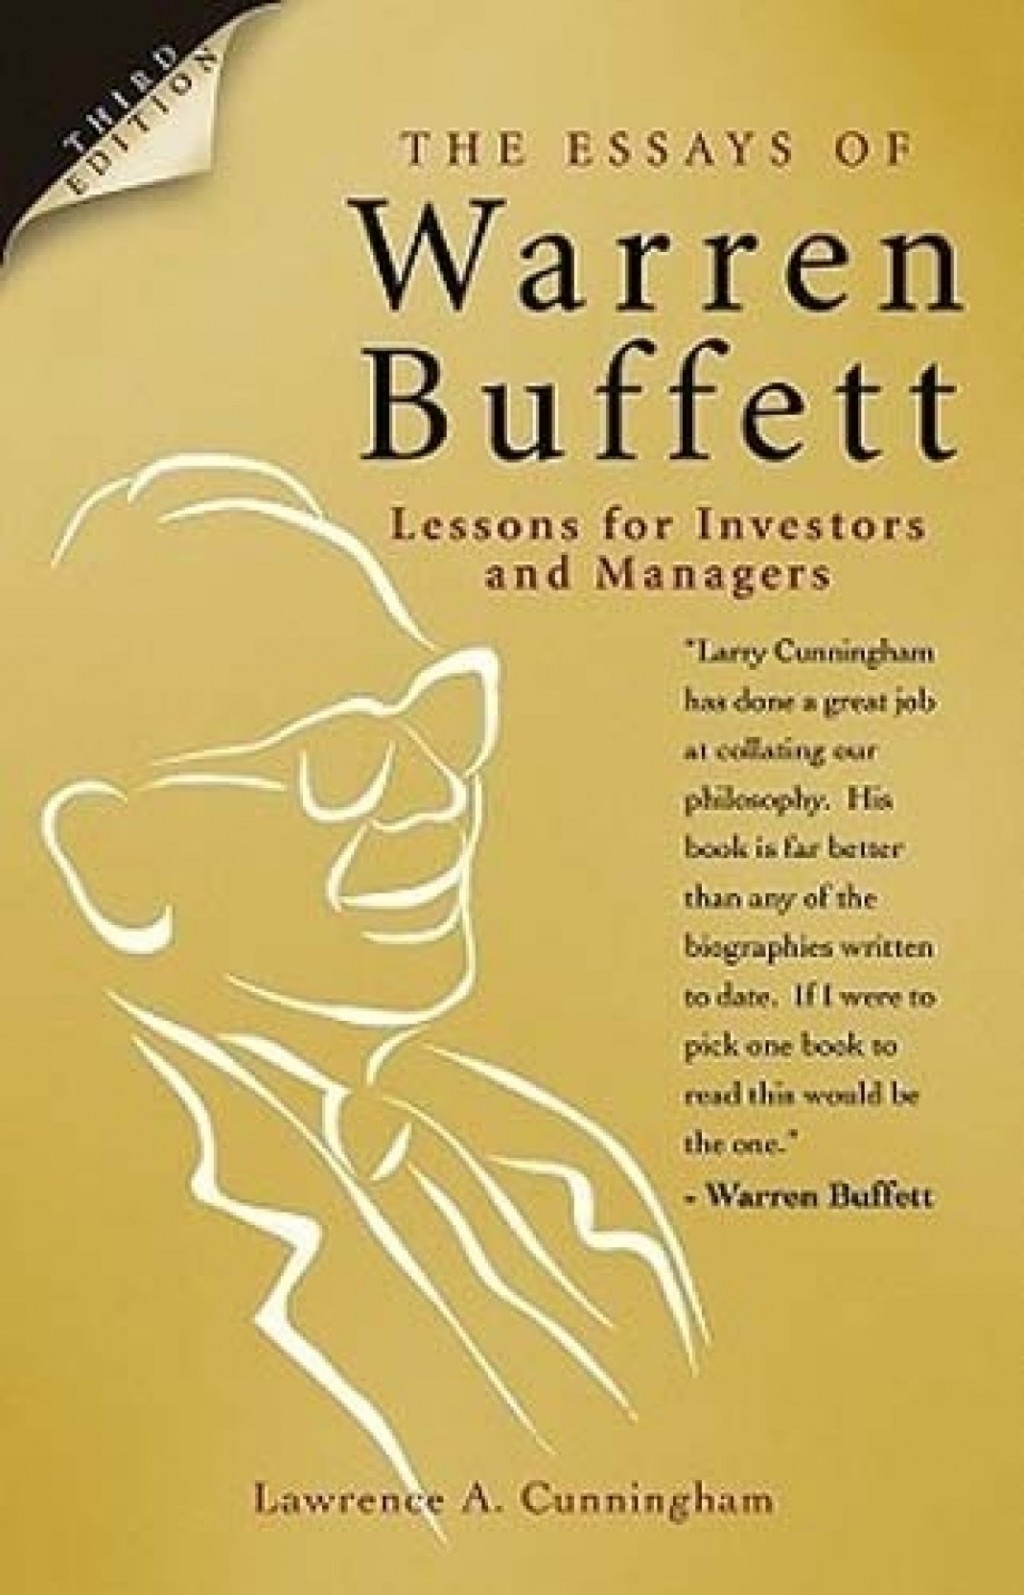 009 The Essays Of Warren Buffett Lessons For Investors And Managers Original Imaefwkrmxazxvdeq90 Essay Striking 4th Edition Free Pdf Large